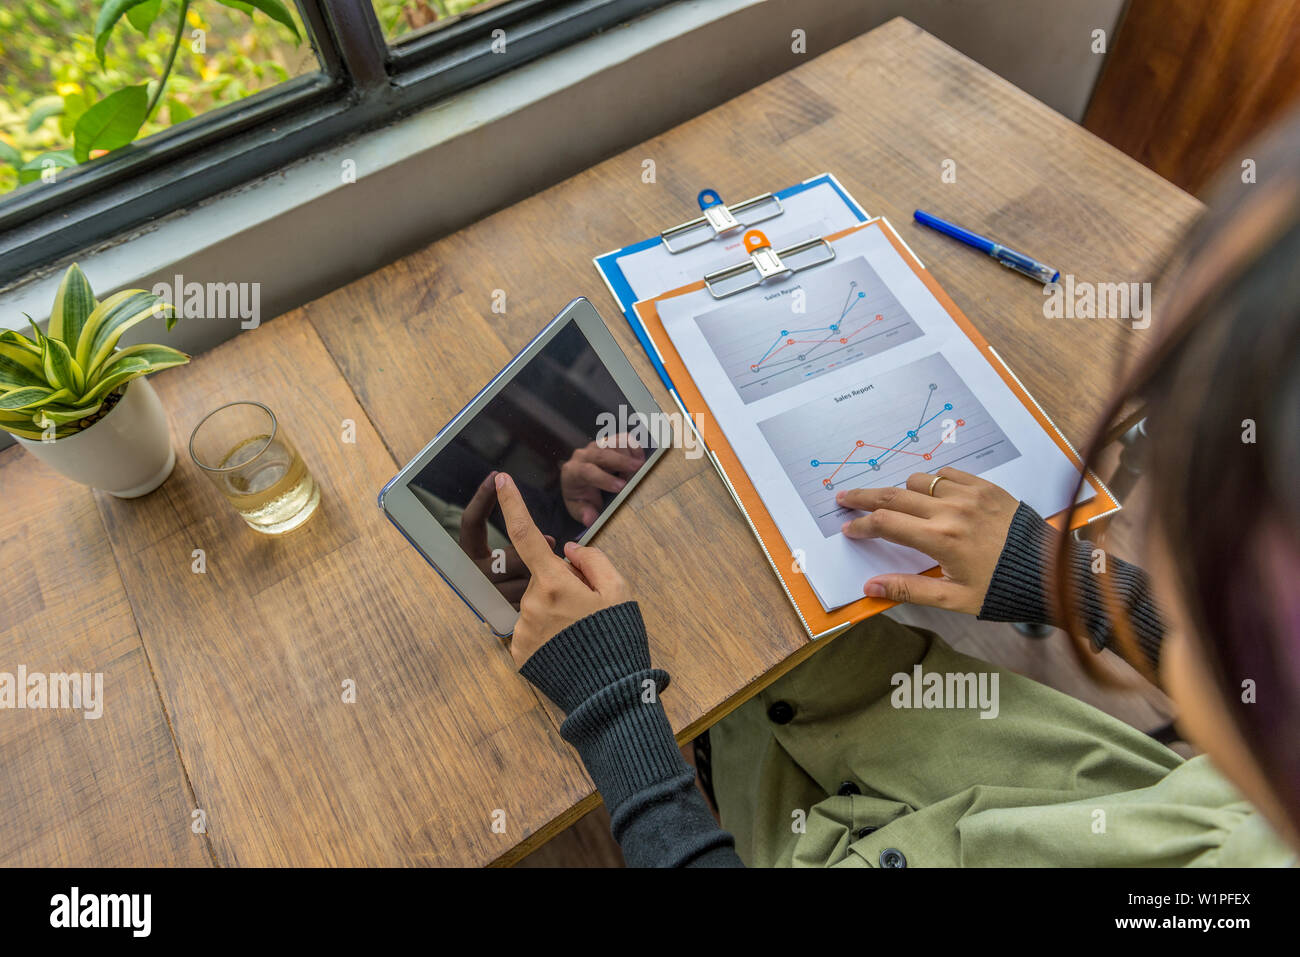 High angle view of woman using tablet, analyzing diagram document - Stock Image